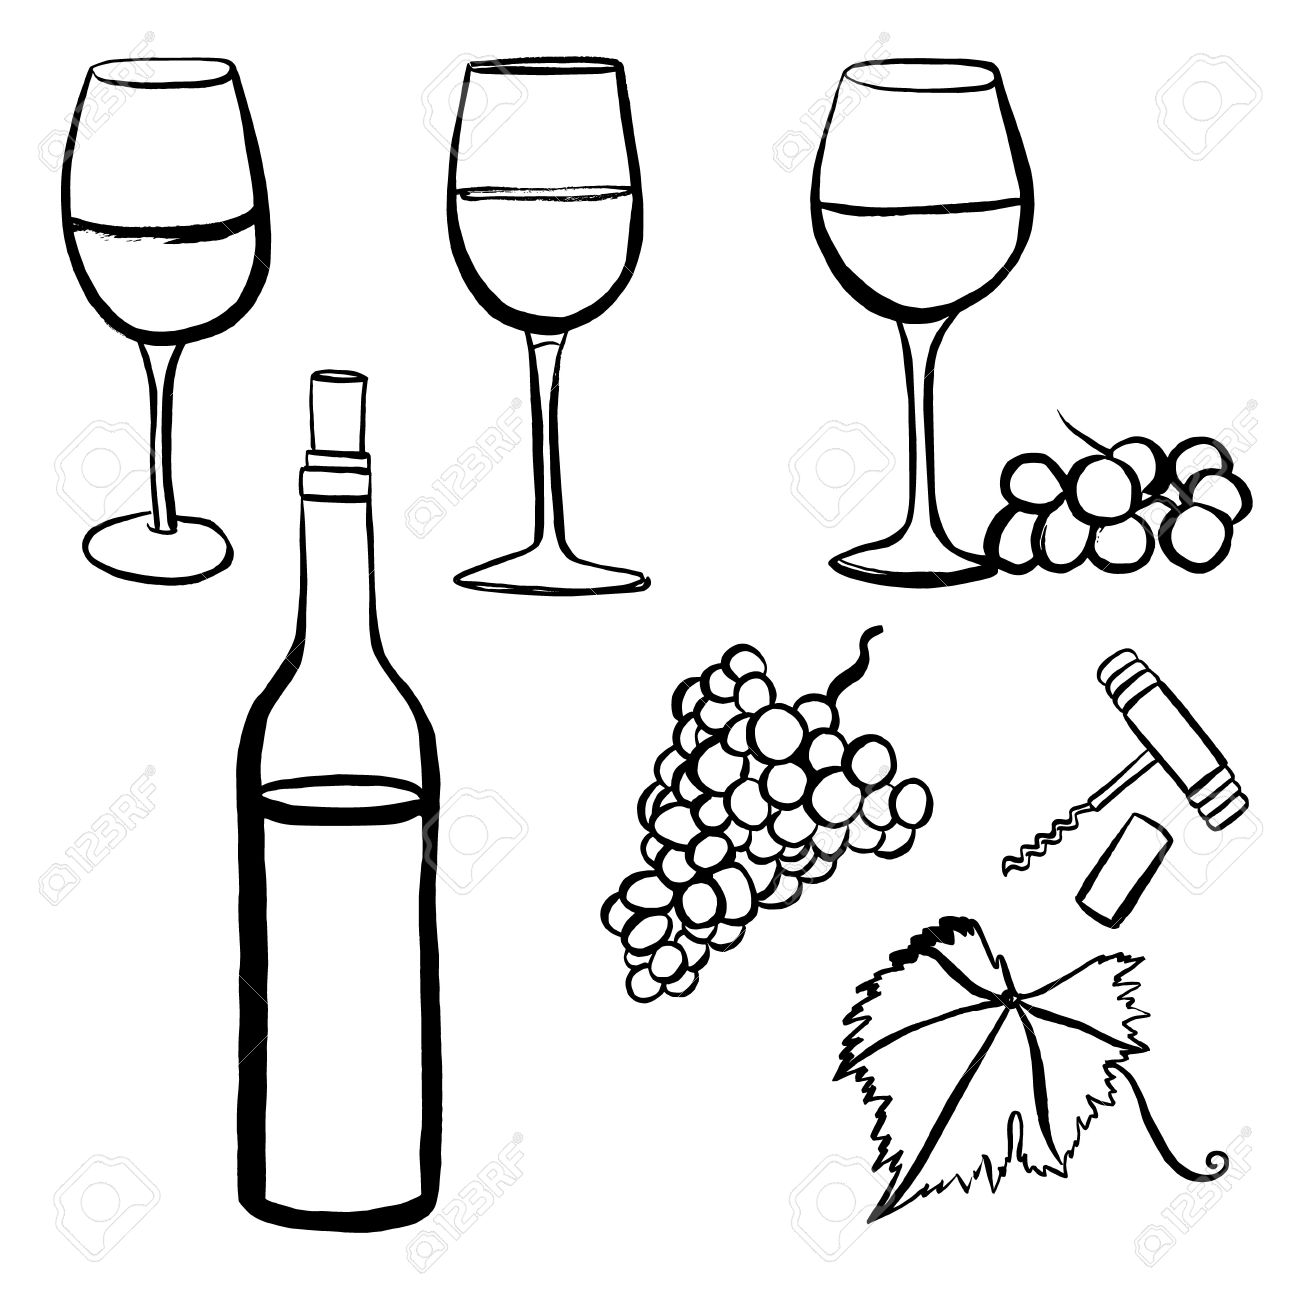 1300x1300 Vector Set Of Freehand Drawings Of Wine Glasses, Grapes, Bottle